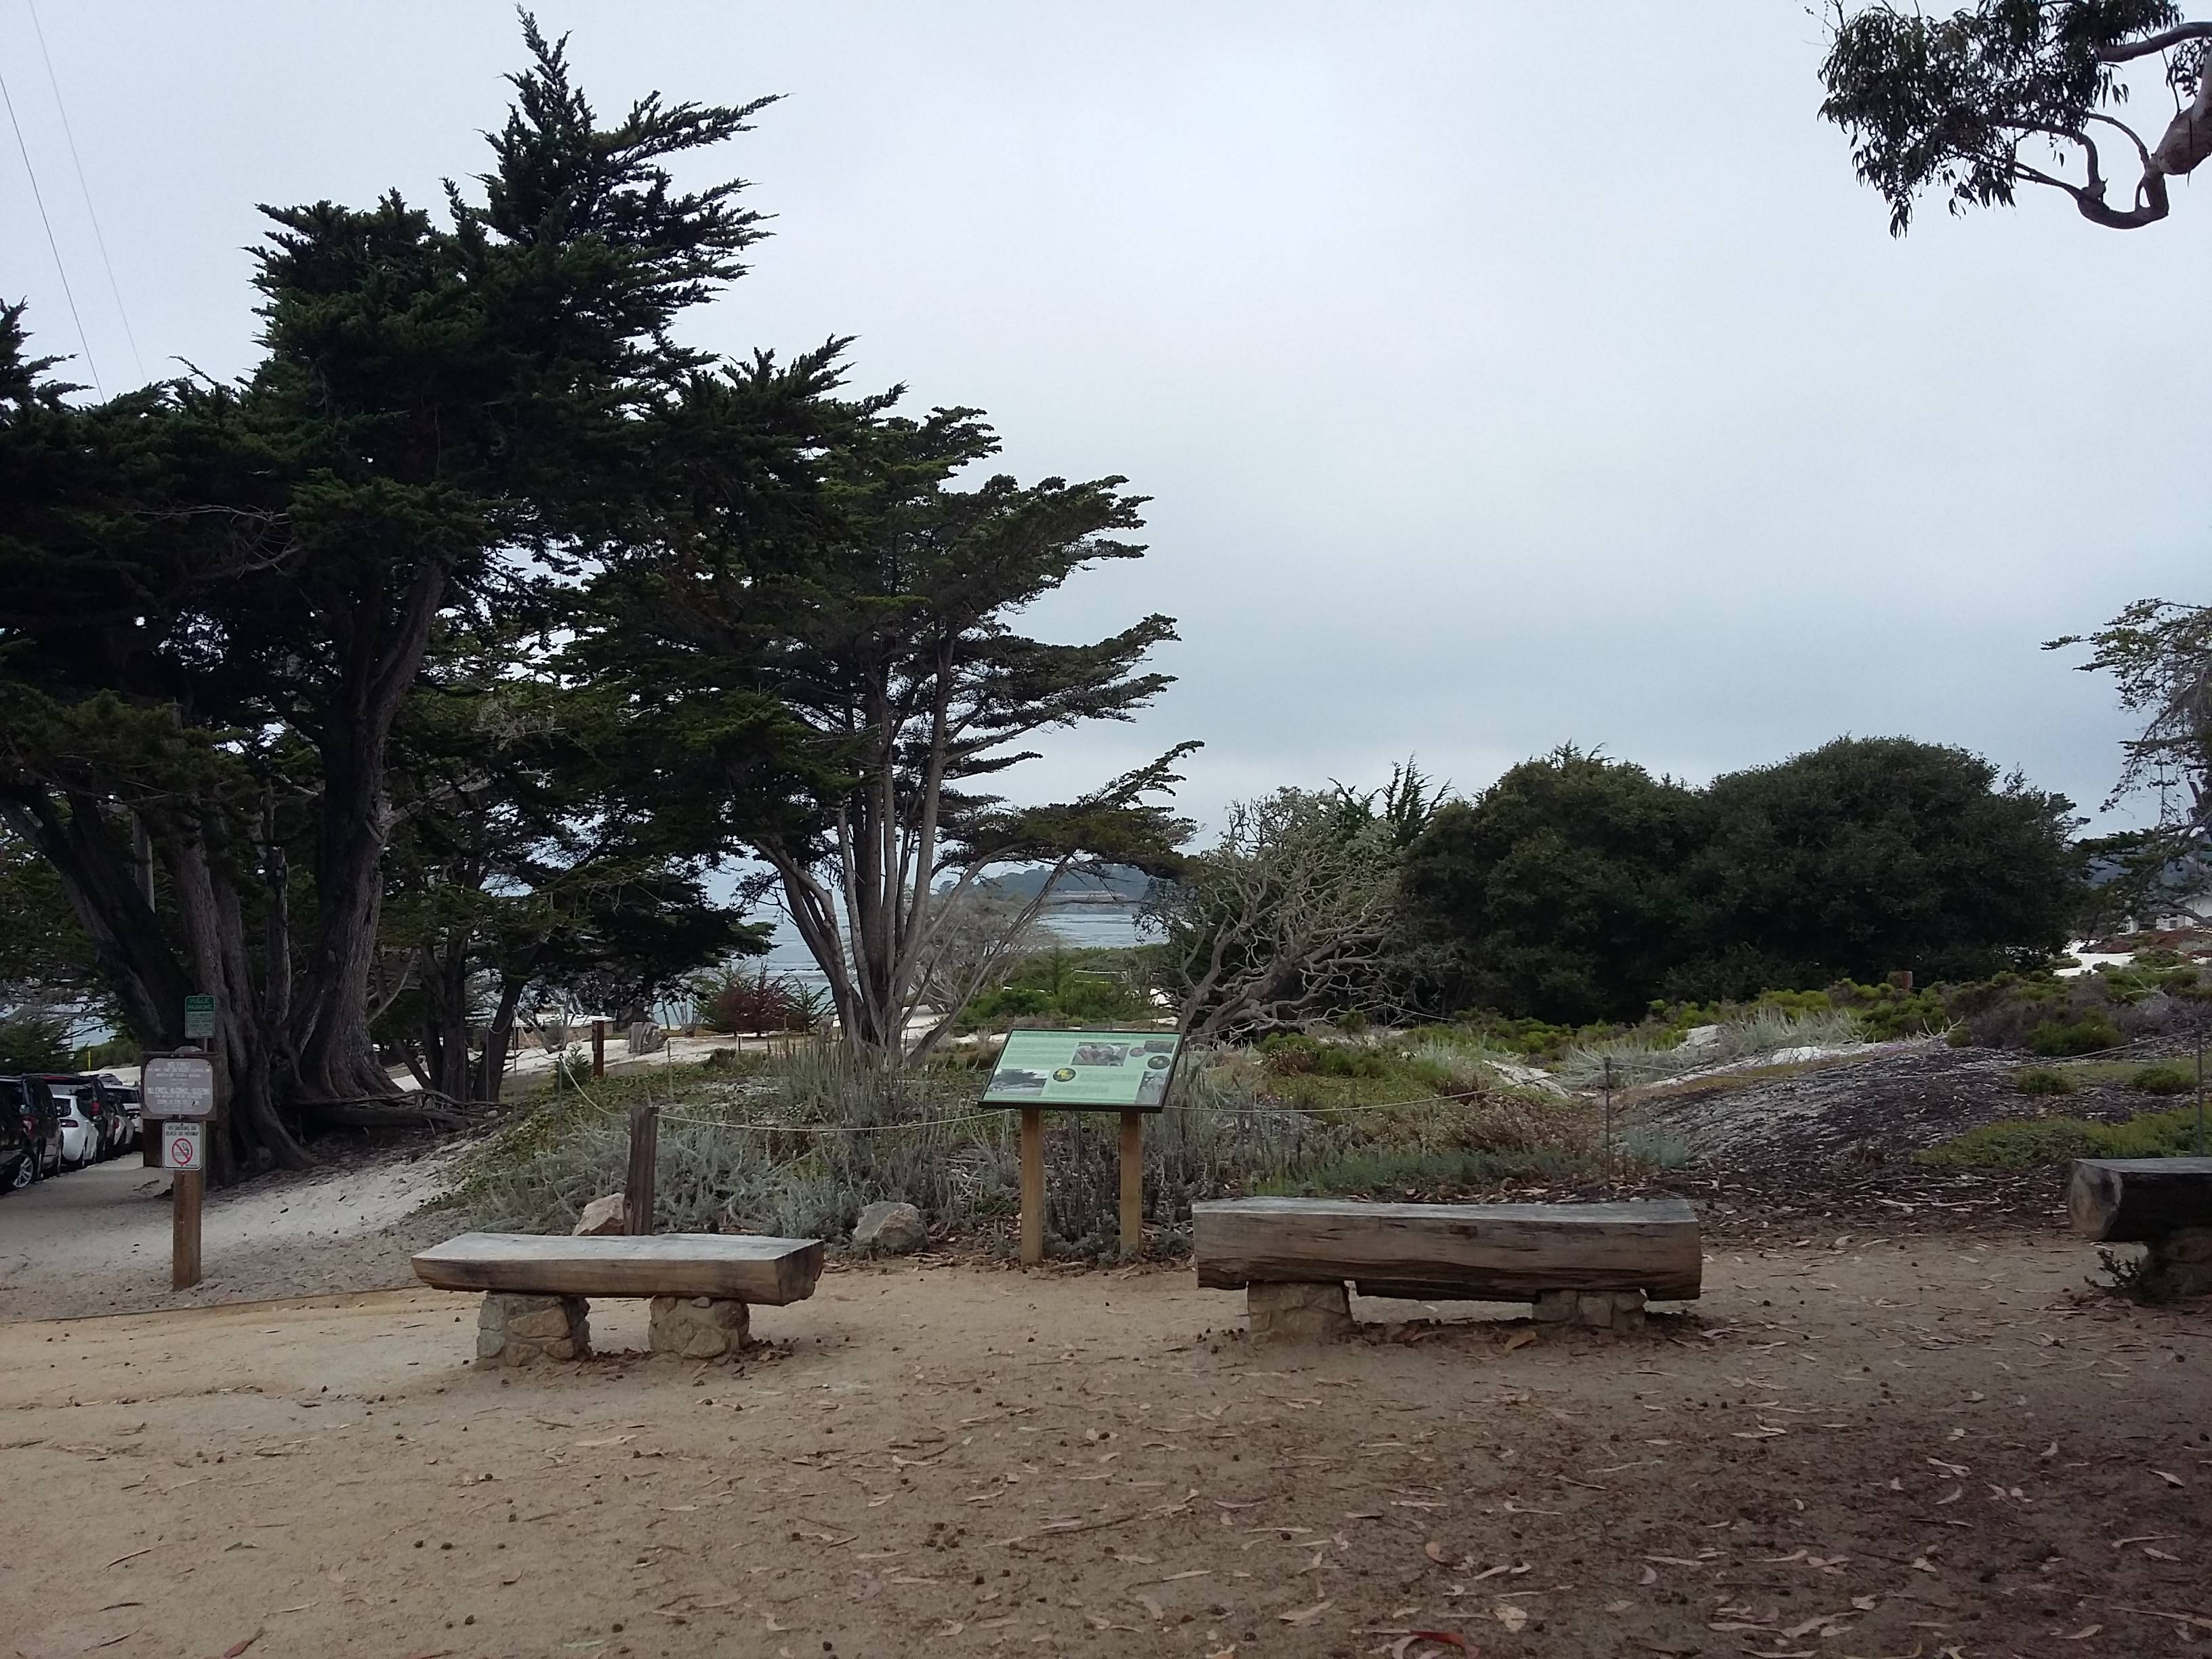 Photo 1: carmel-by-the-sea... un village aux US